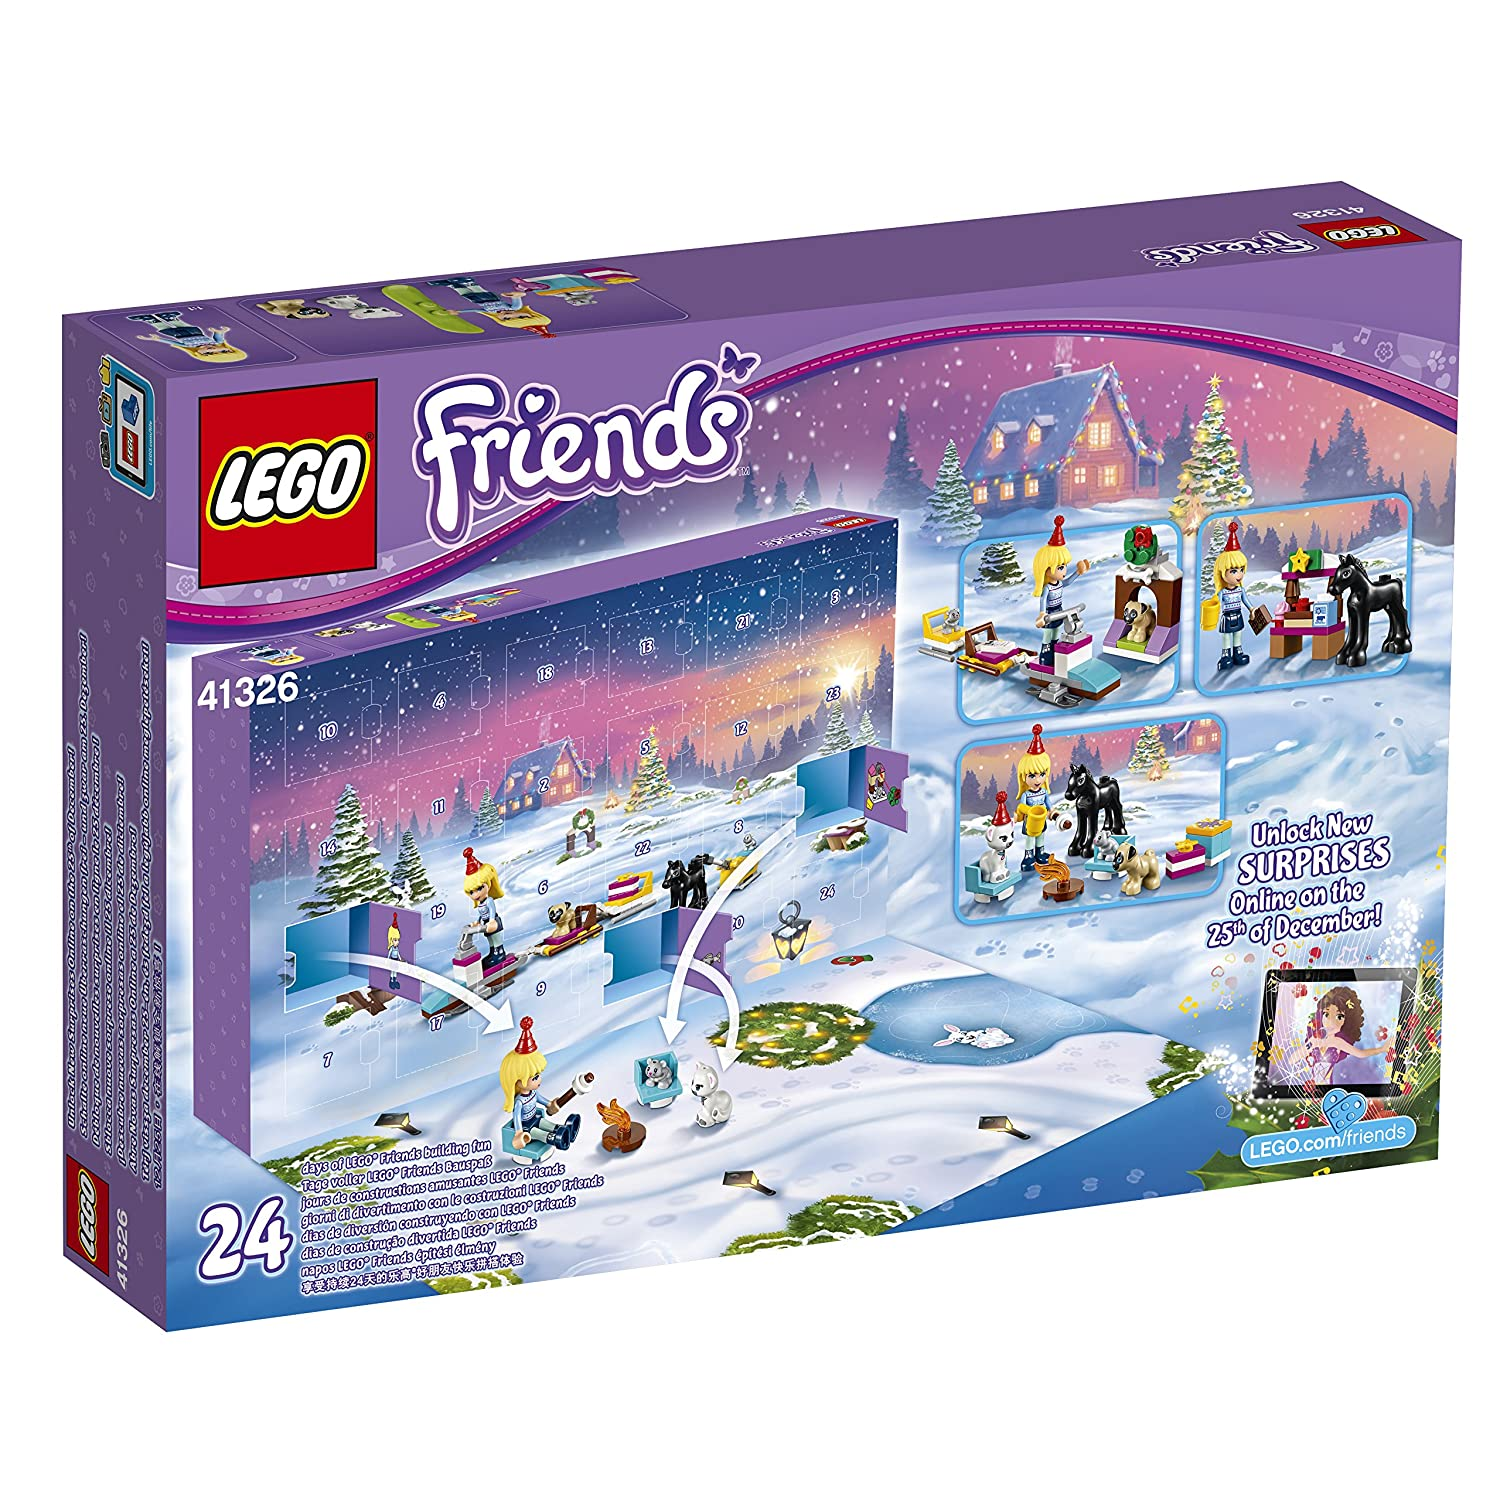 Weihnachtskalender Lego Friends.Lego Friends 41326 Adventskalender